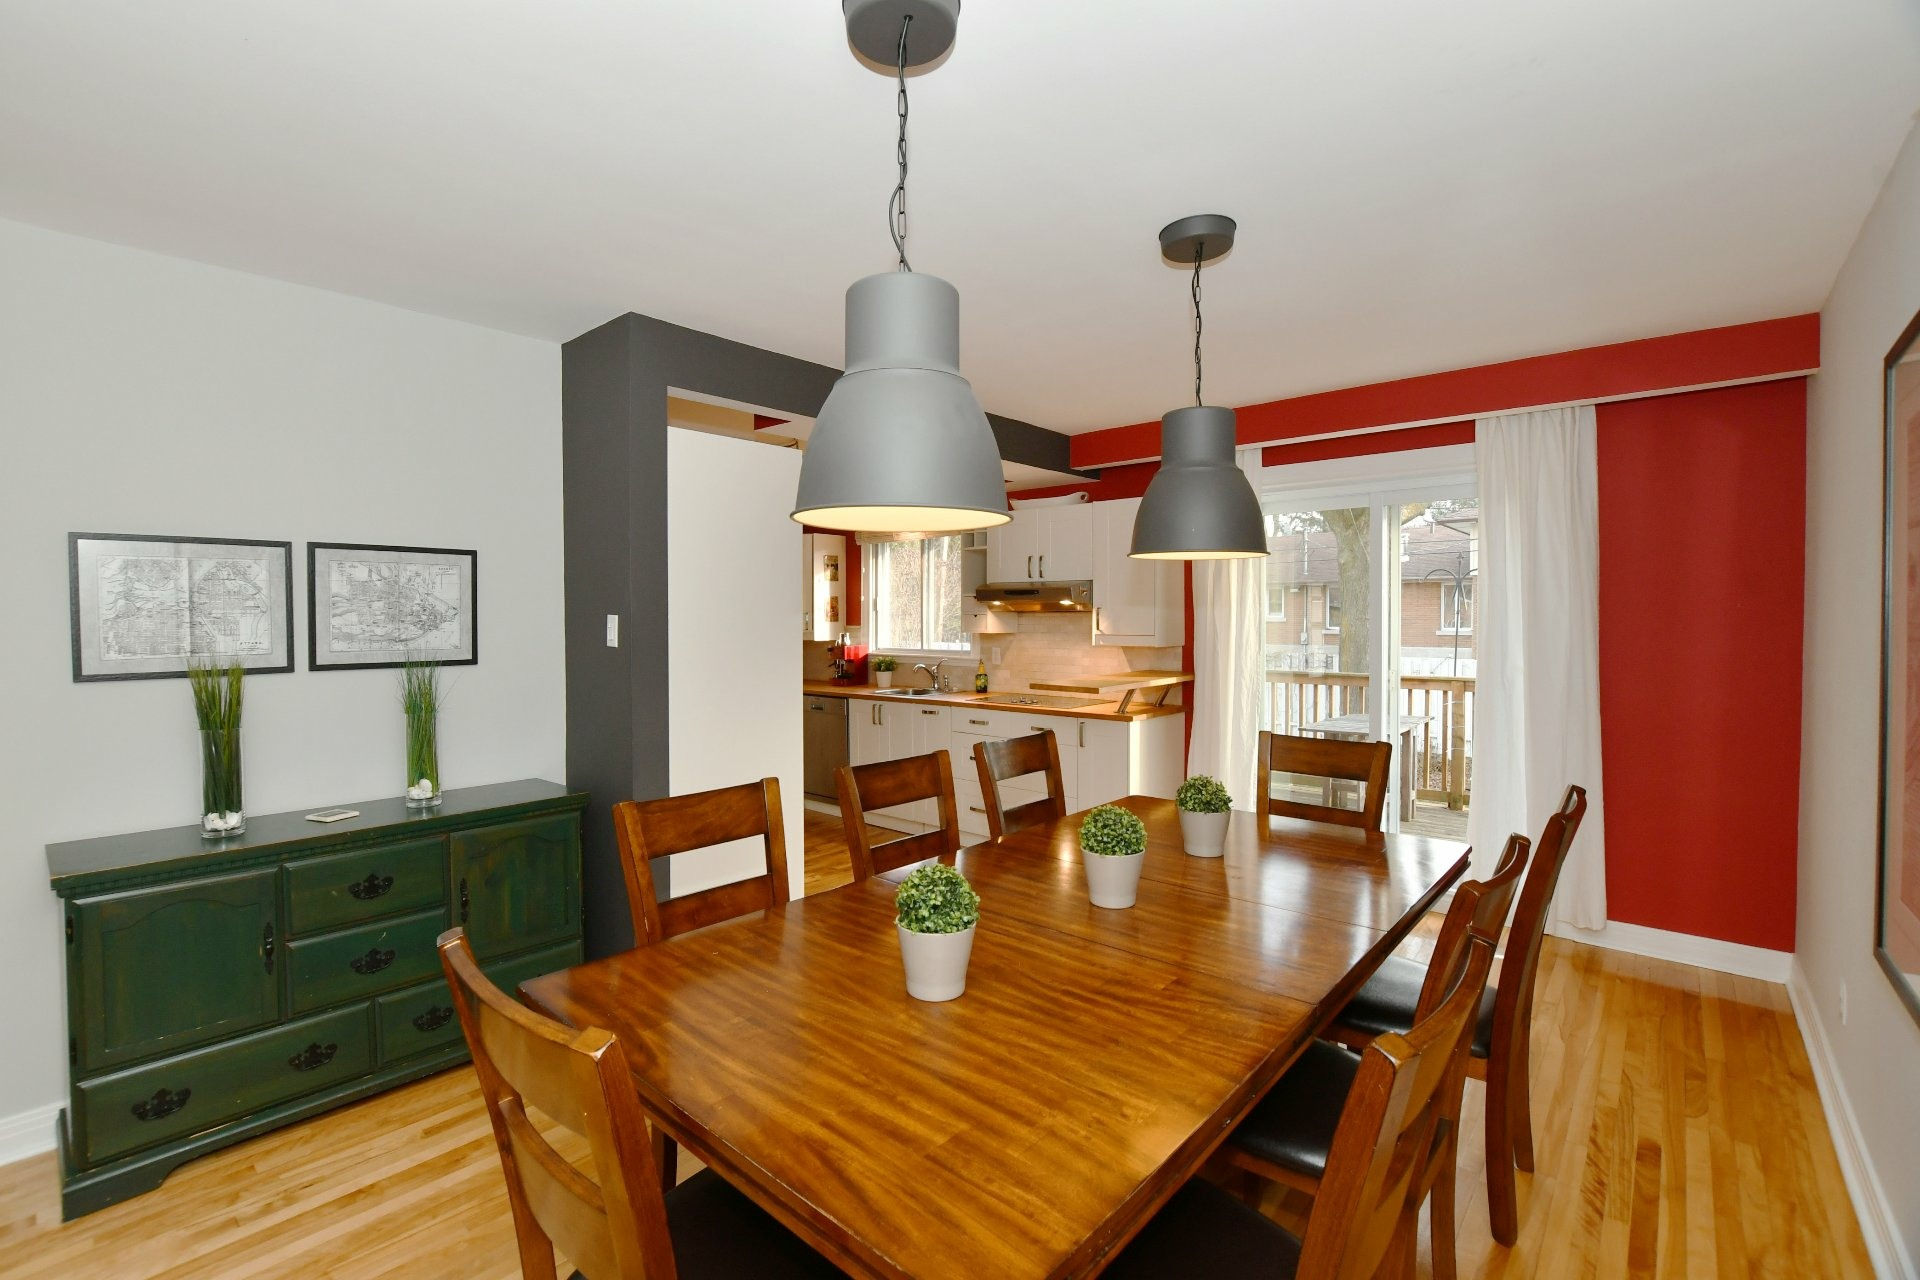 image 4 - House For sale Pointe-Claire - 10 rooms